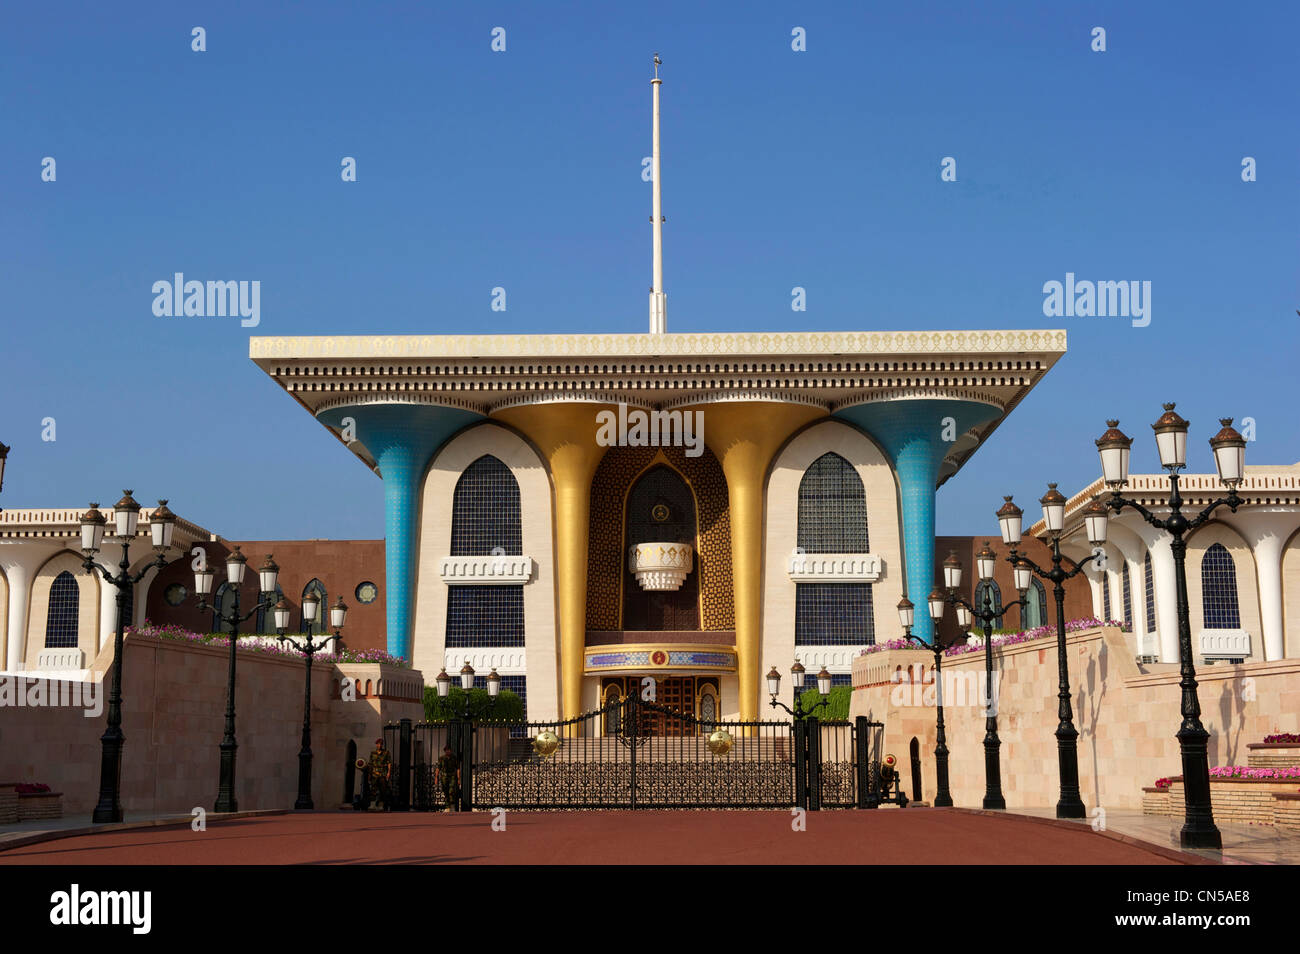 Sultanate of Oman, Muscat, Al Alam Palace for official receptions of sultan Qaboos - Stock Image